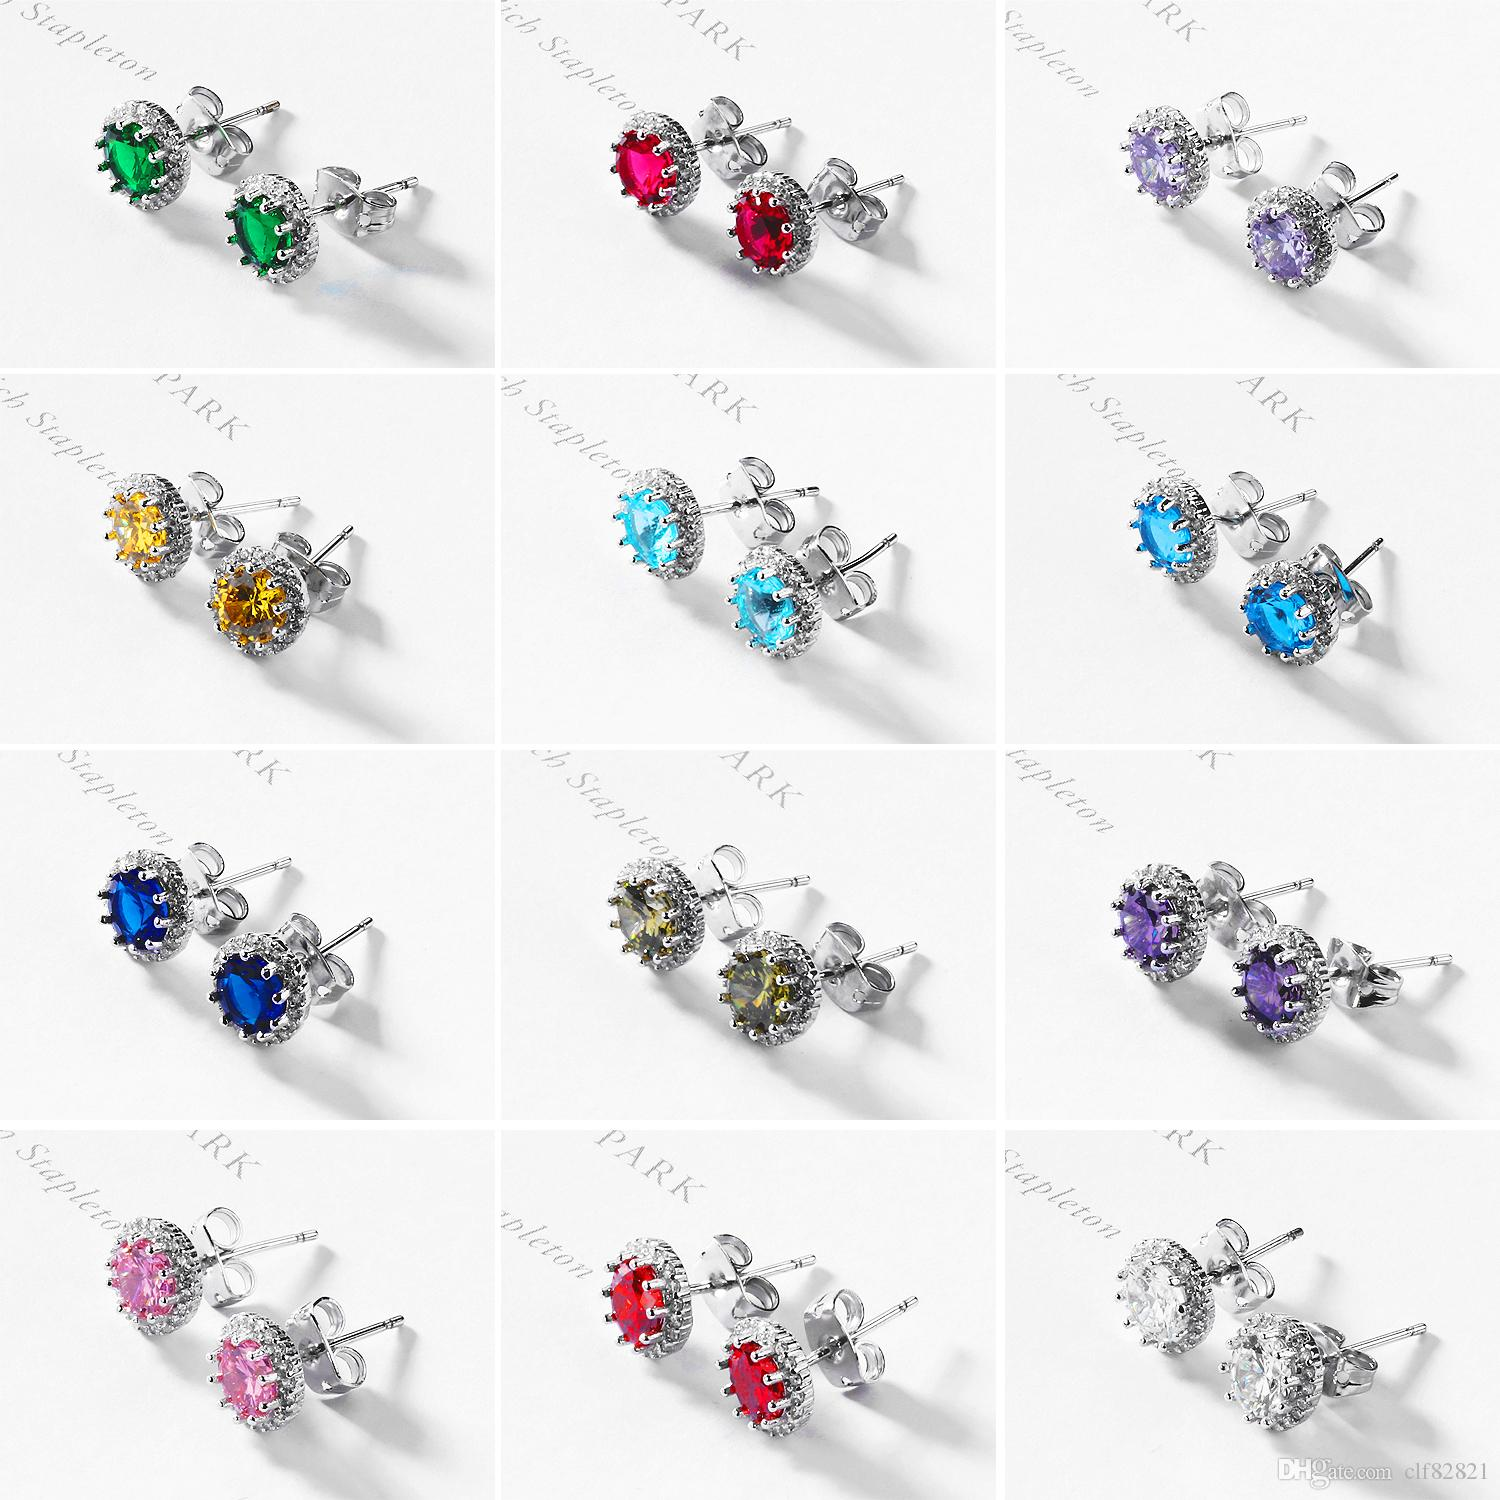 a6d756bf2 2019 Fashion Colorful Stone Stud Earrings December Lucky Stud Earrings  Colorful Stud Earrings Wholesale From Clf82821, $24.37 | DHgate.Com